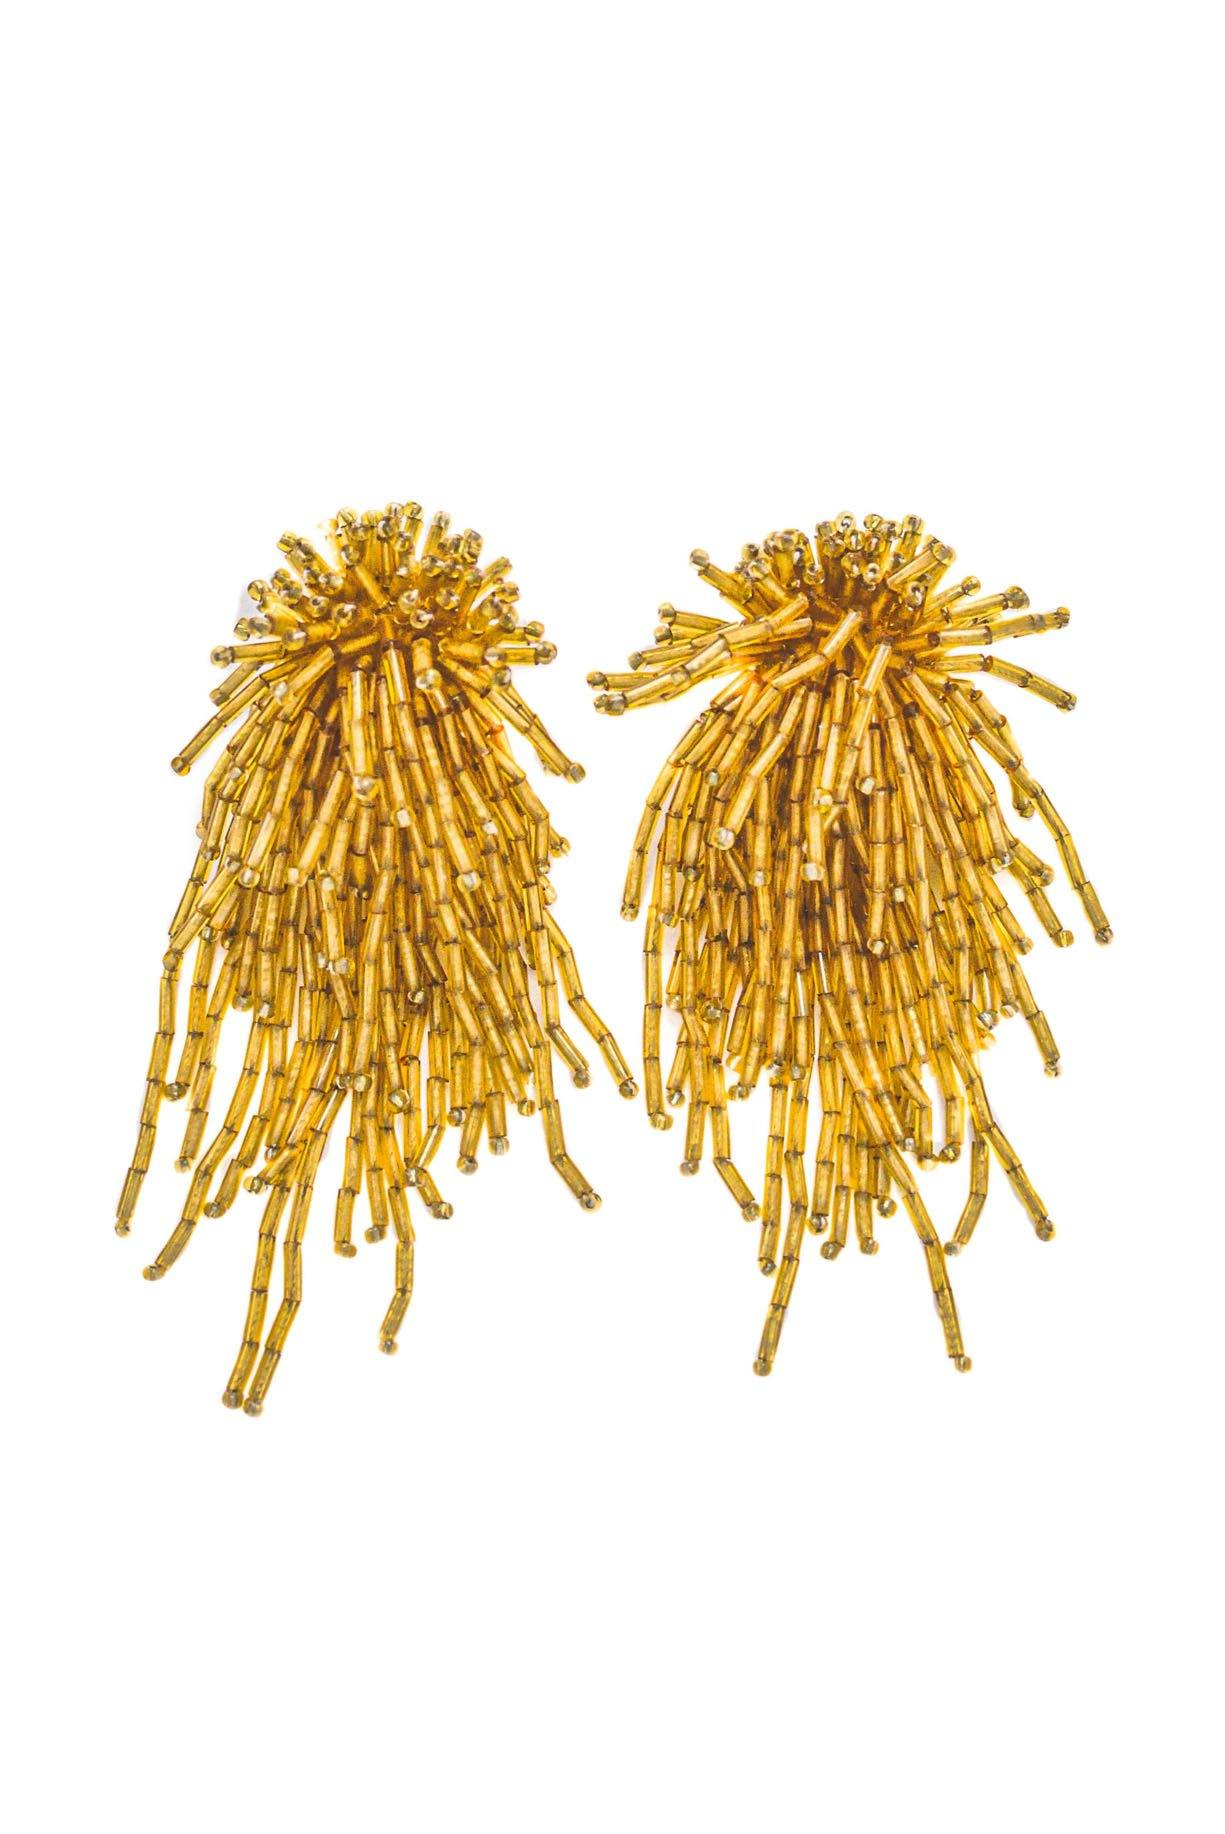 Vintage gold beaded clip-on confetti earrings.